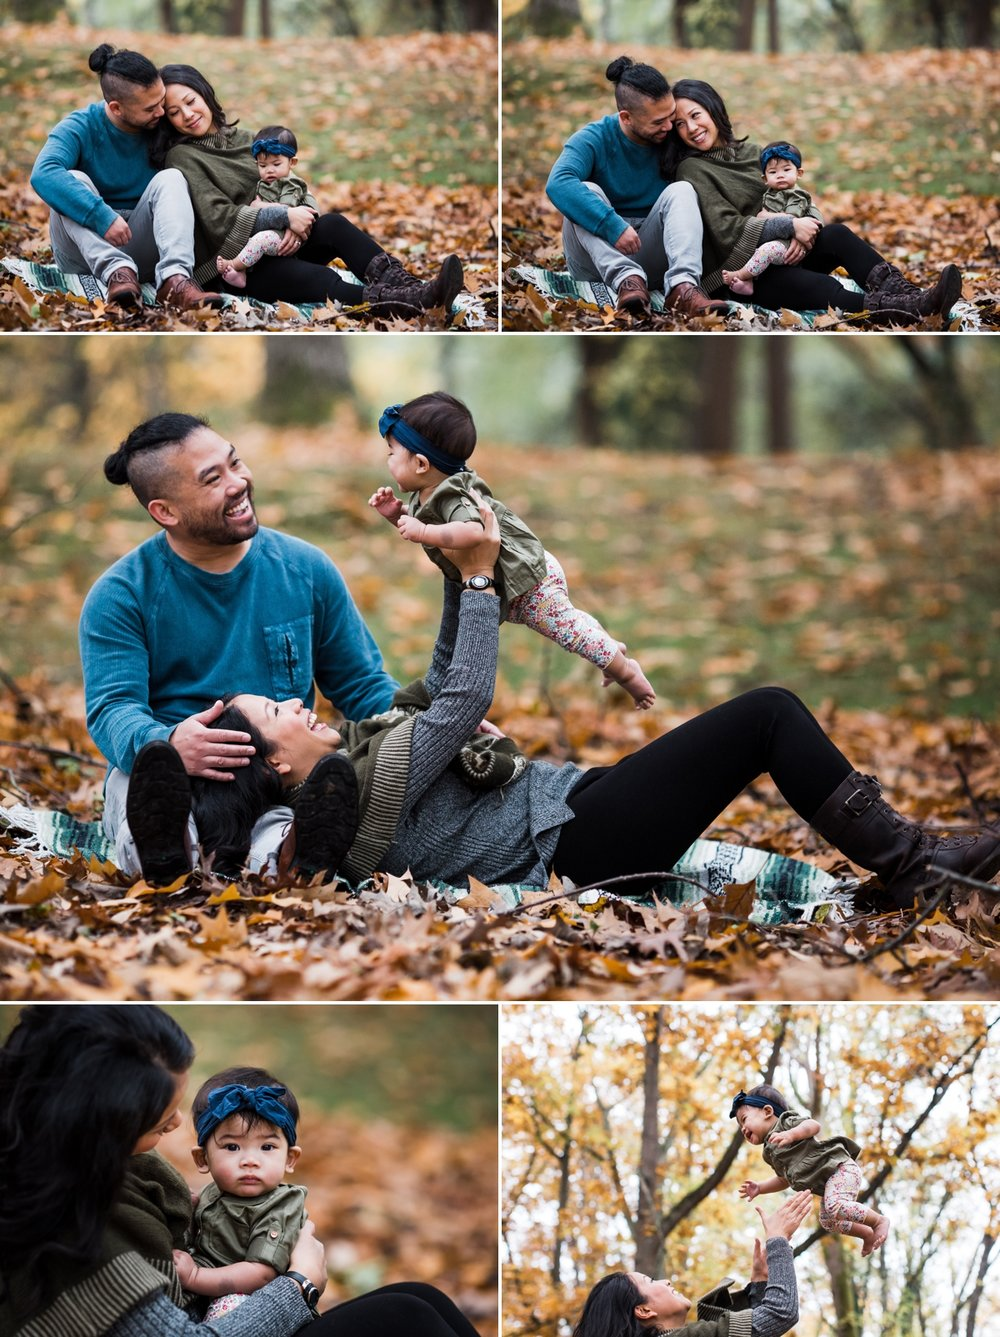 Elena S Blair | Seattle, WA Photographer | Connected and Emotive Family & Newborn Photography